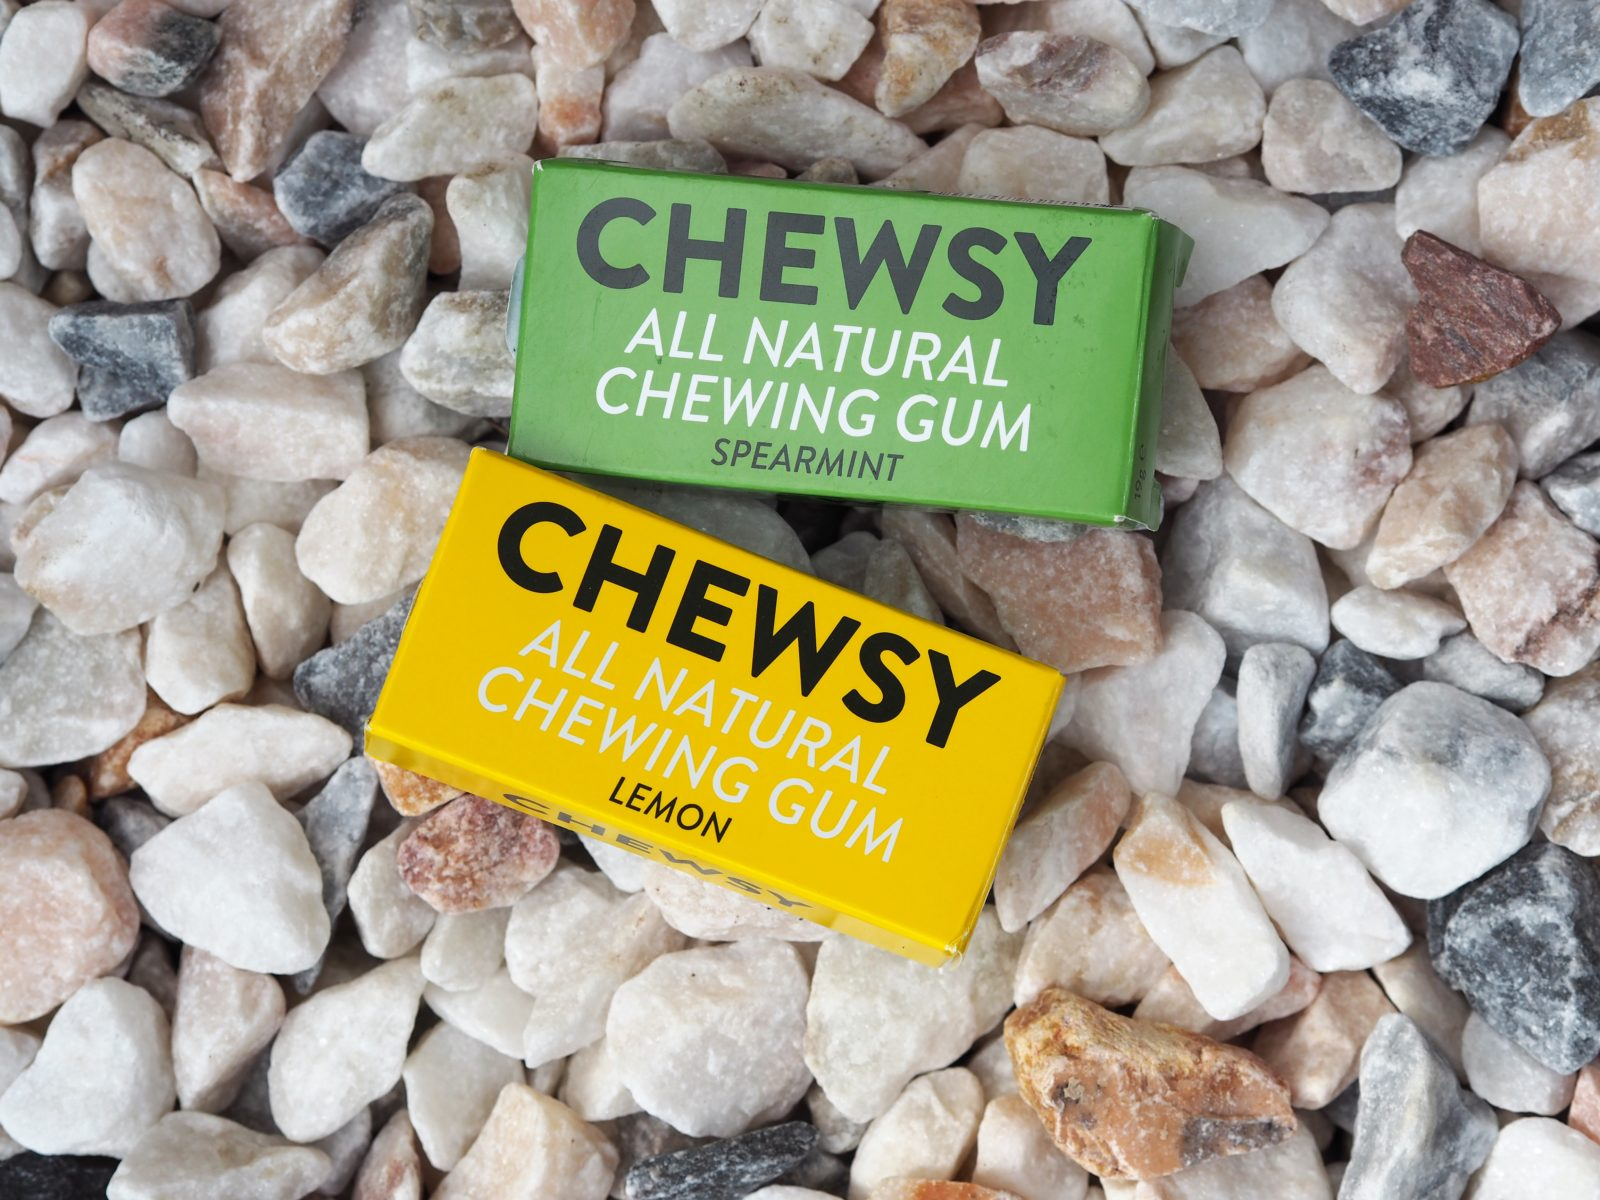 spearmint and lemon chewsy gum